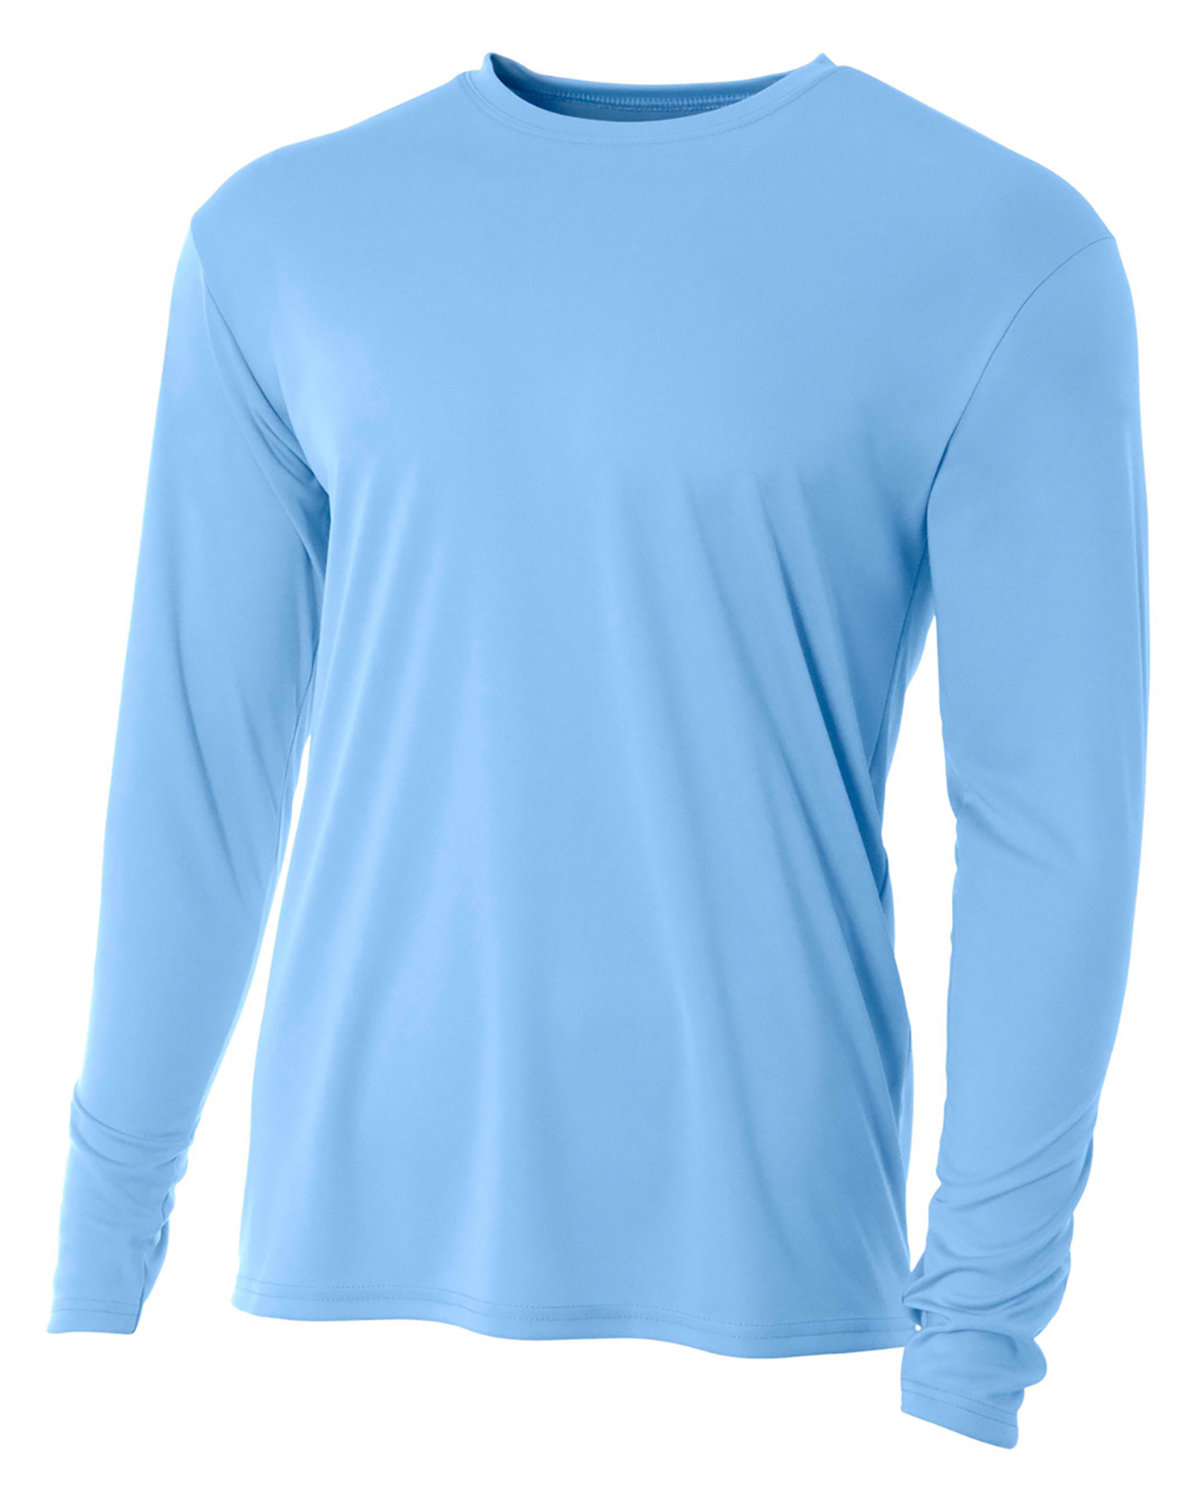 A4 Youth Long Sleeve Cooling Performance Crew Shirt LIGHT BLUE